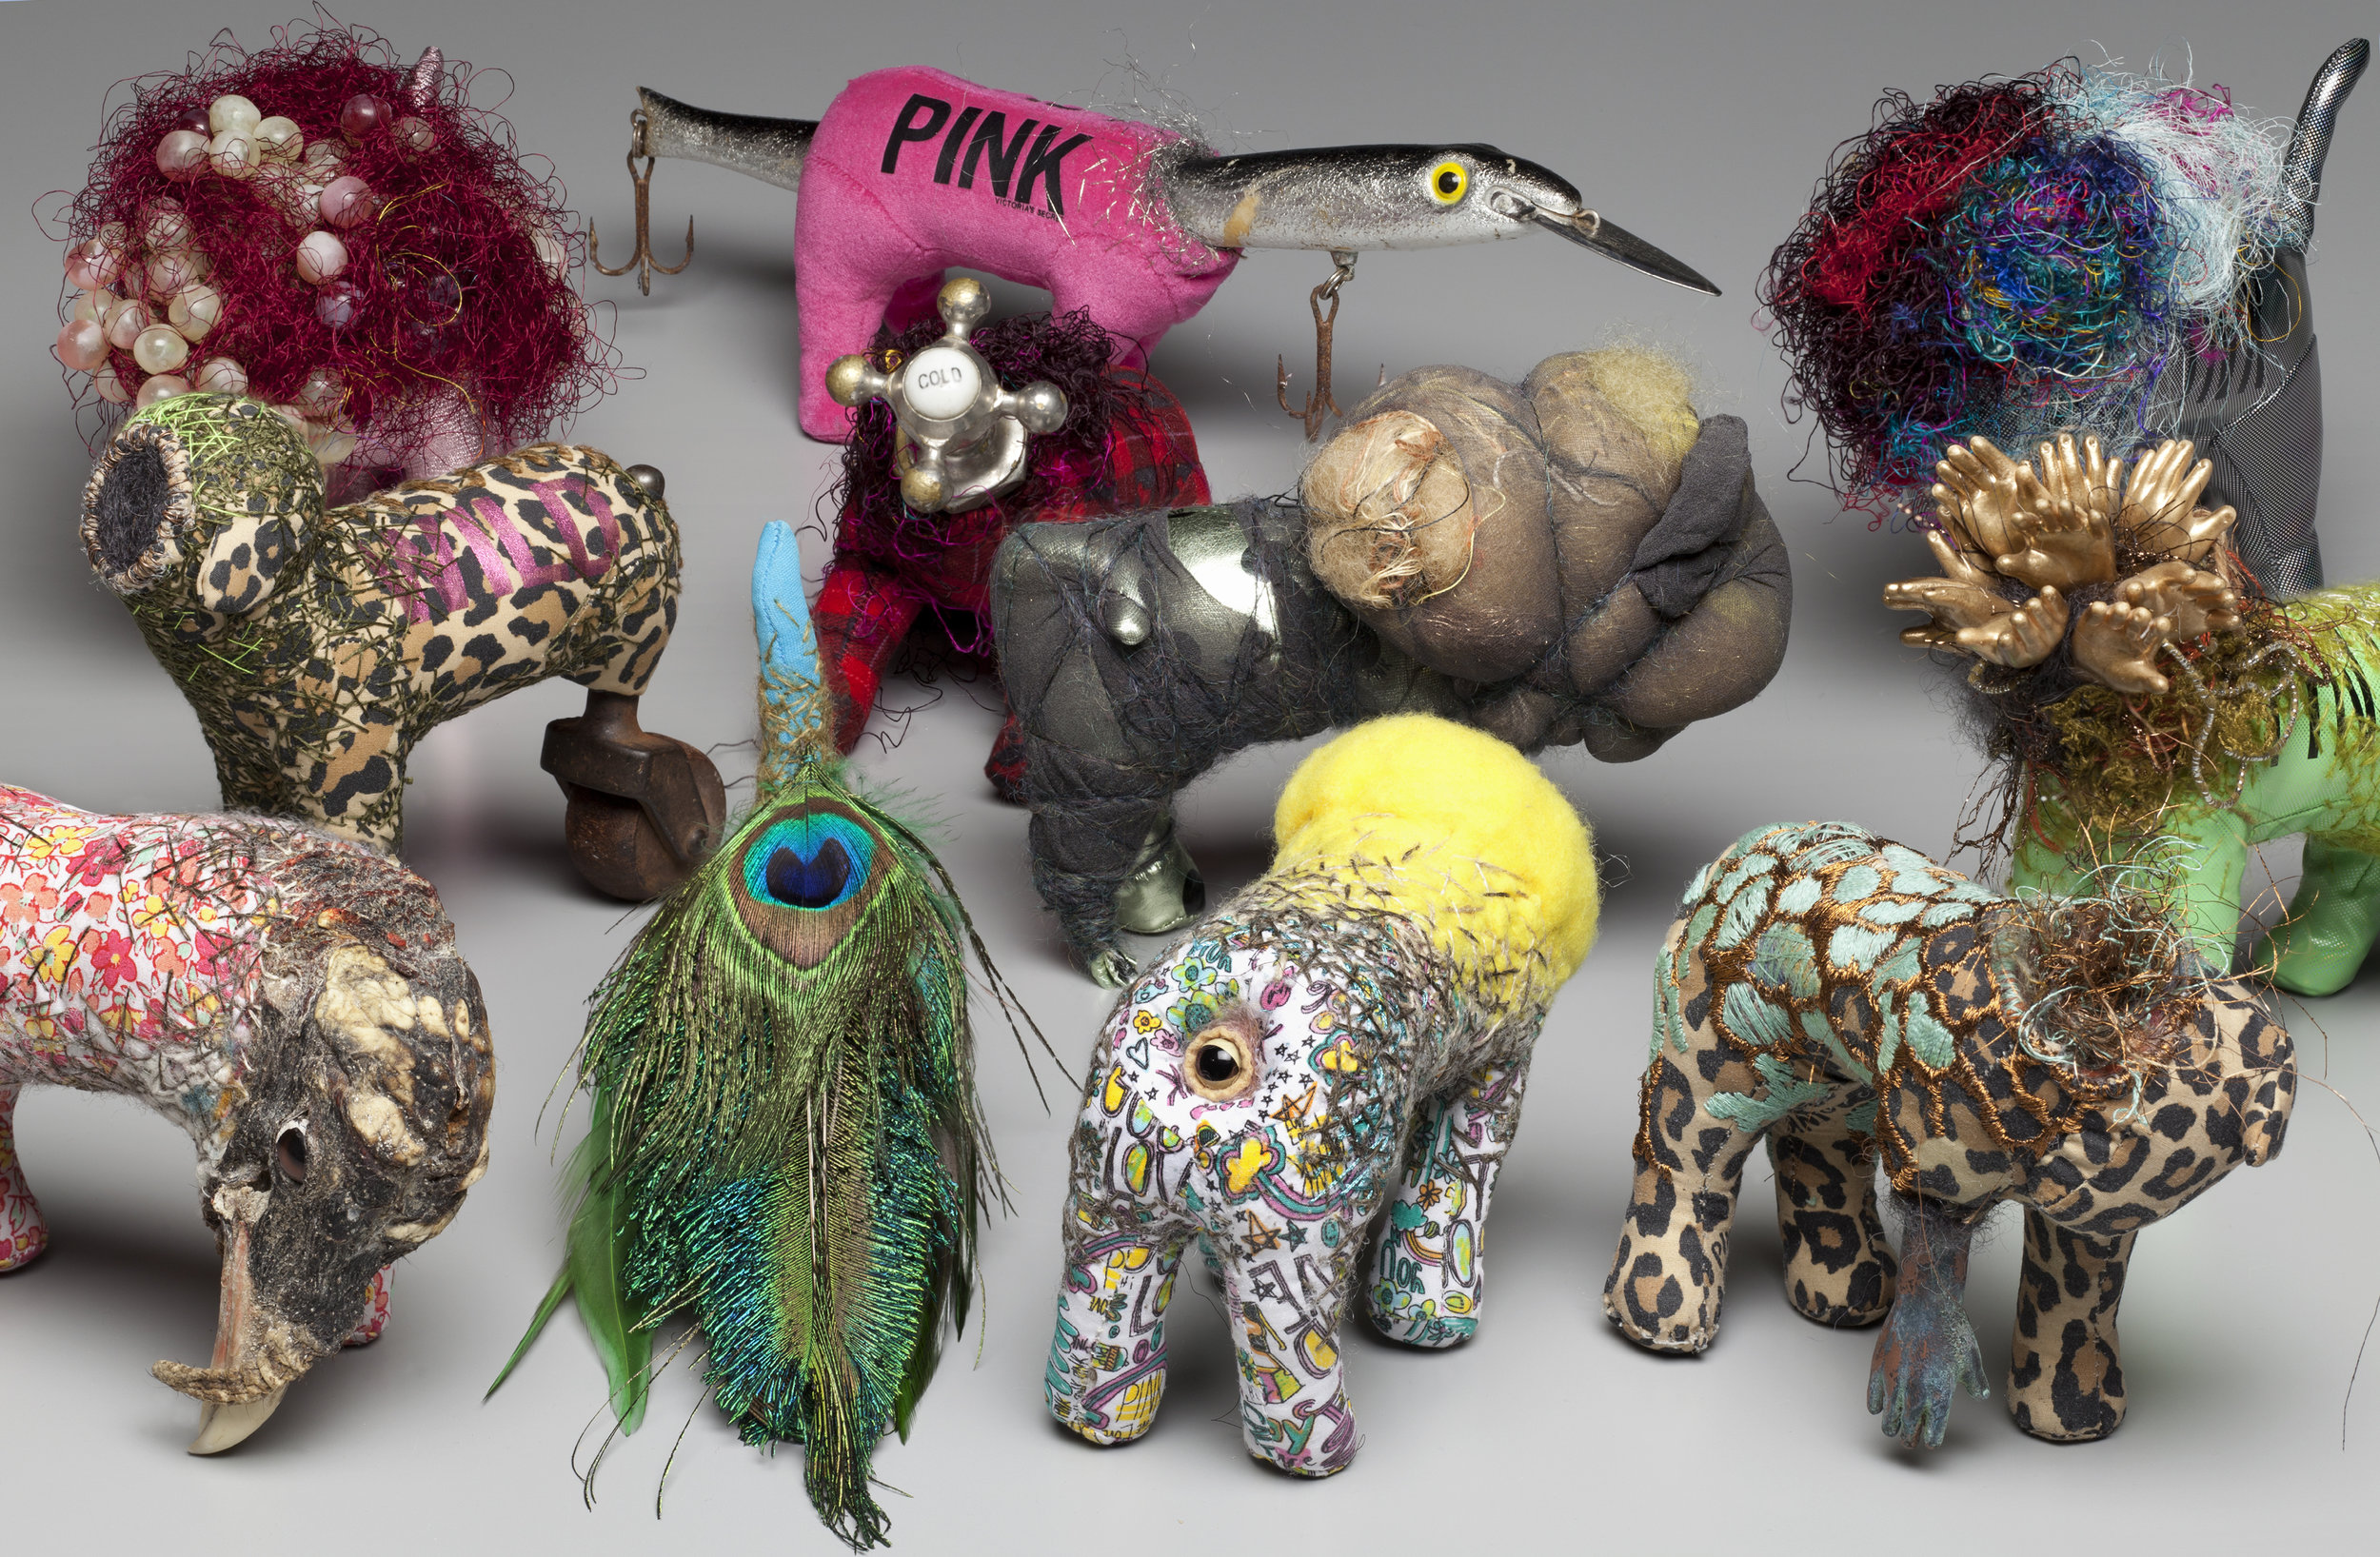 NATURE OF THE BEAST | Installation of 20 sculptures in varied, reconstructed stuffed toys, embroidery, mixed fibers, found objects – 2016